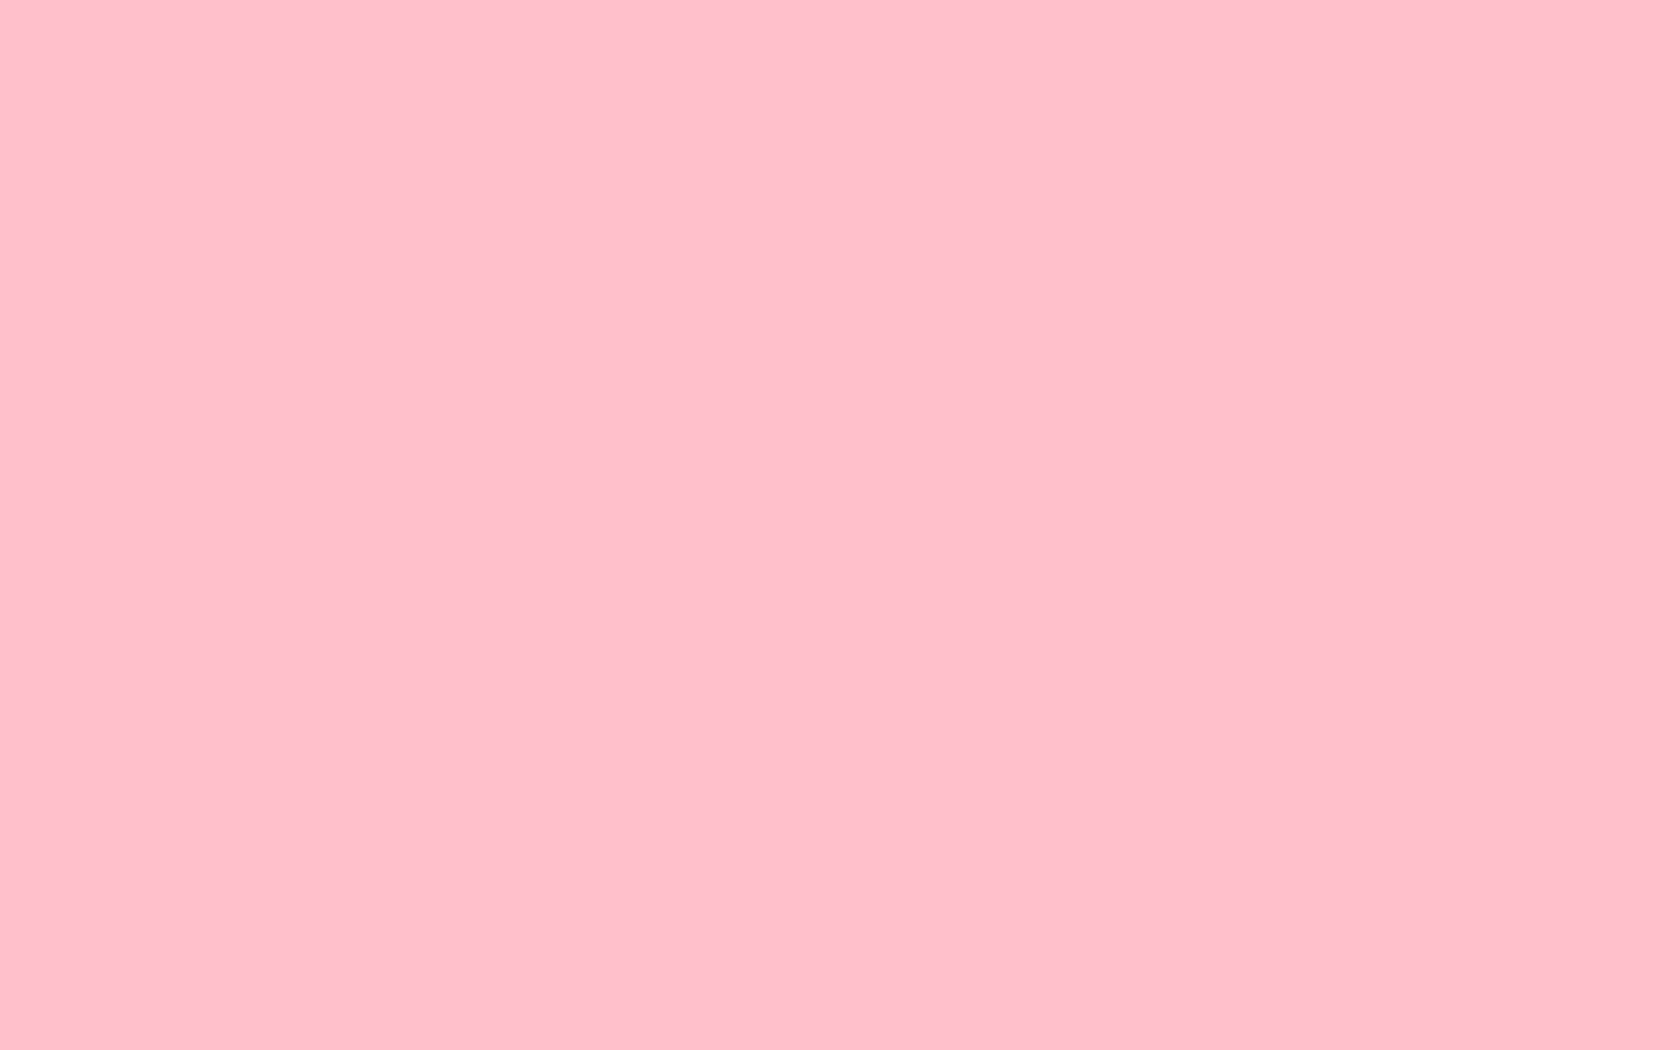 1680x1050 Pink Solid Color Background